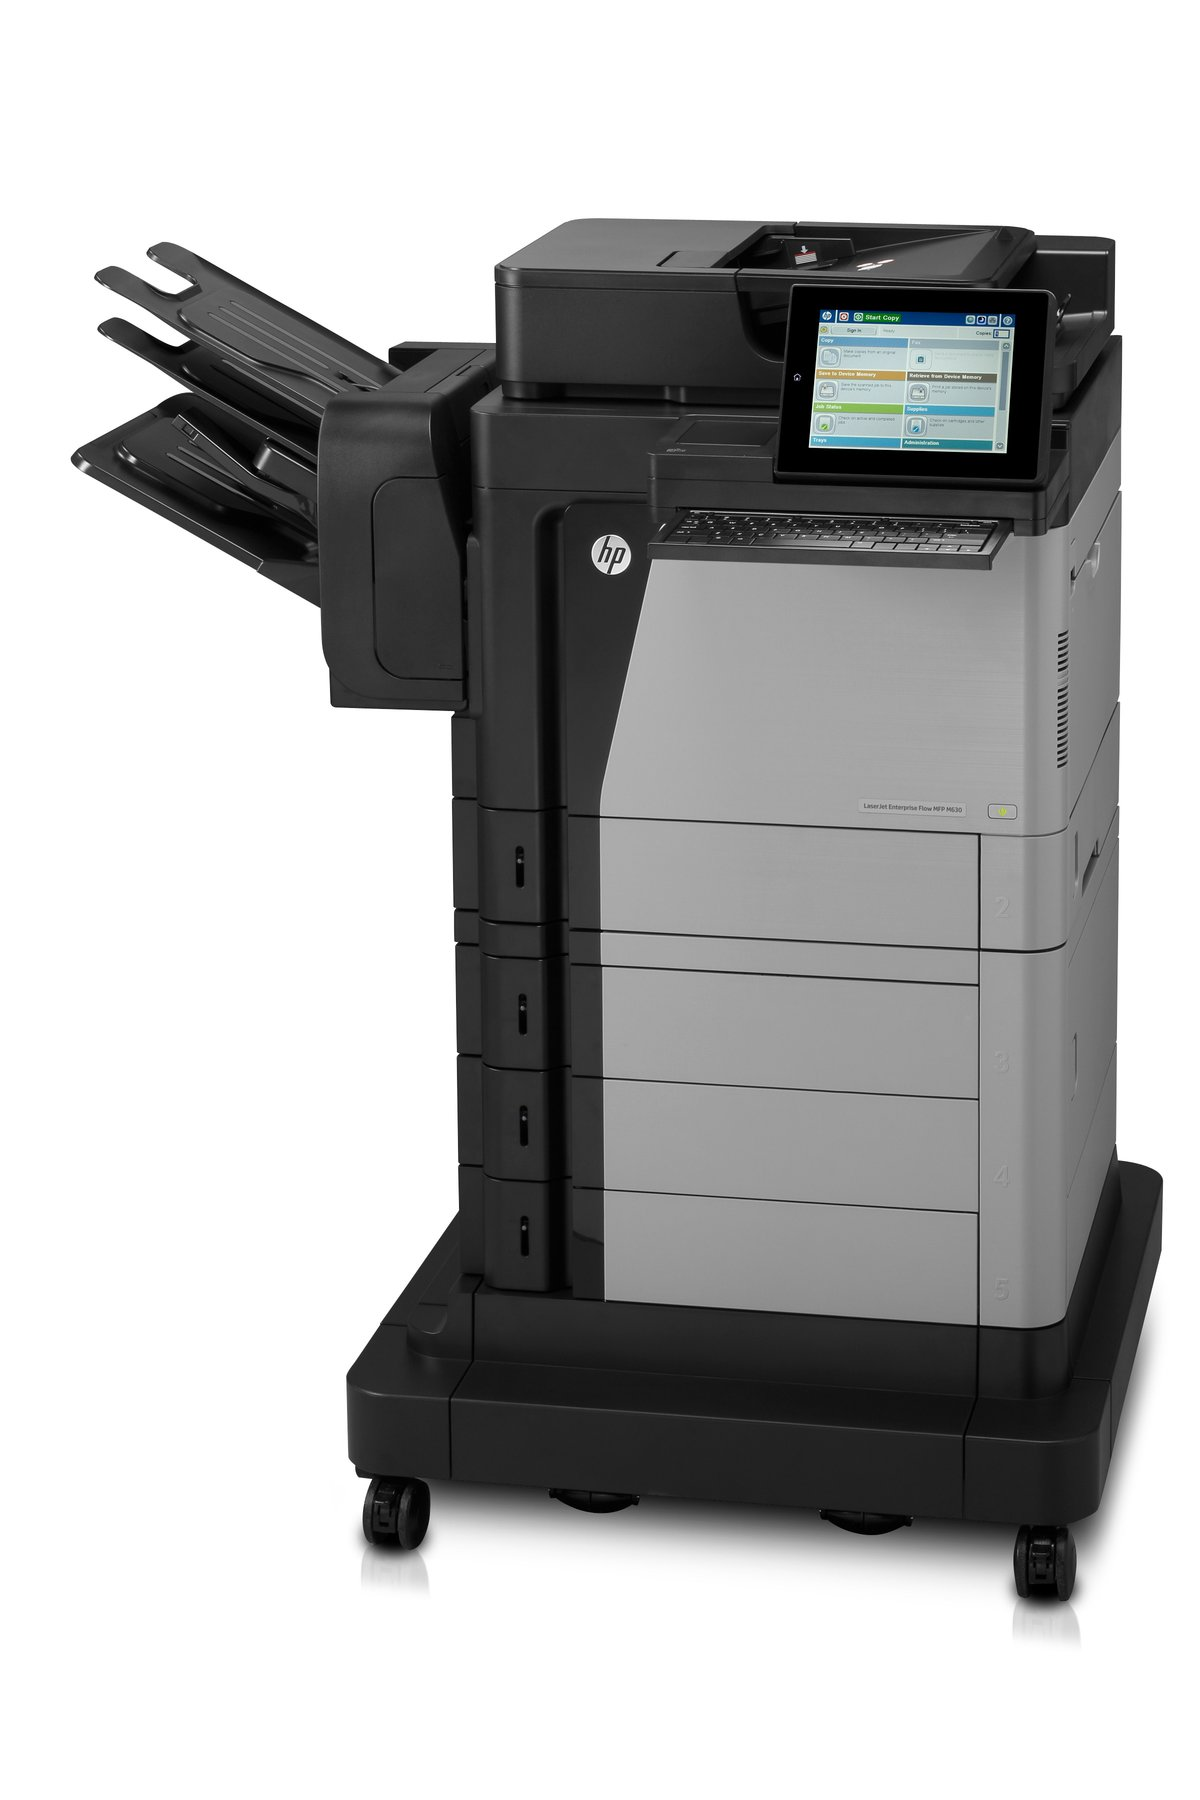 hp series envelope pdf feeder laserjet enterprise